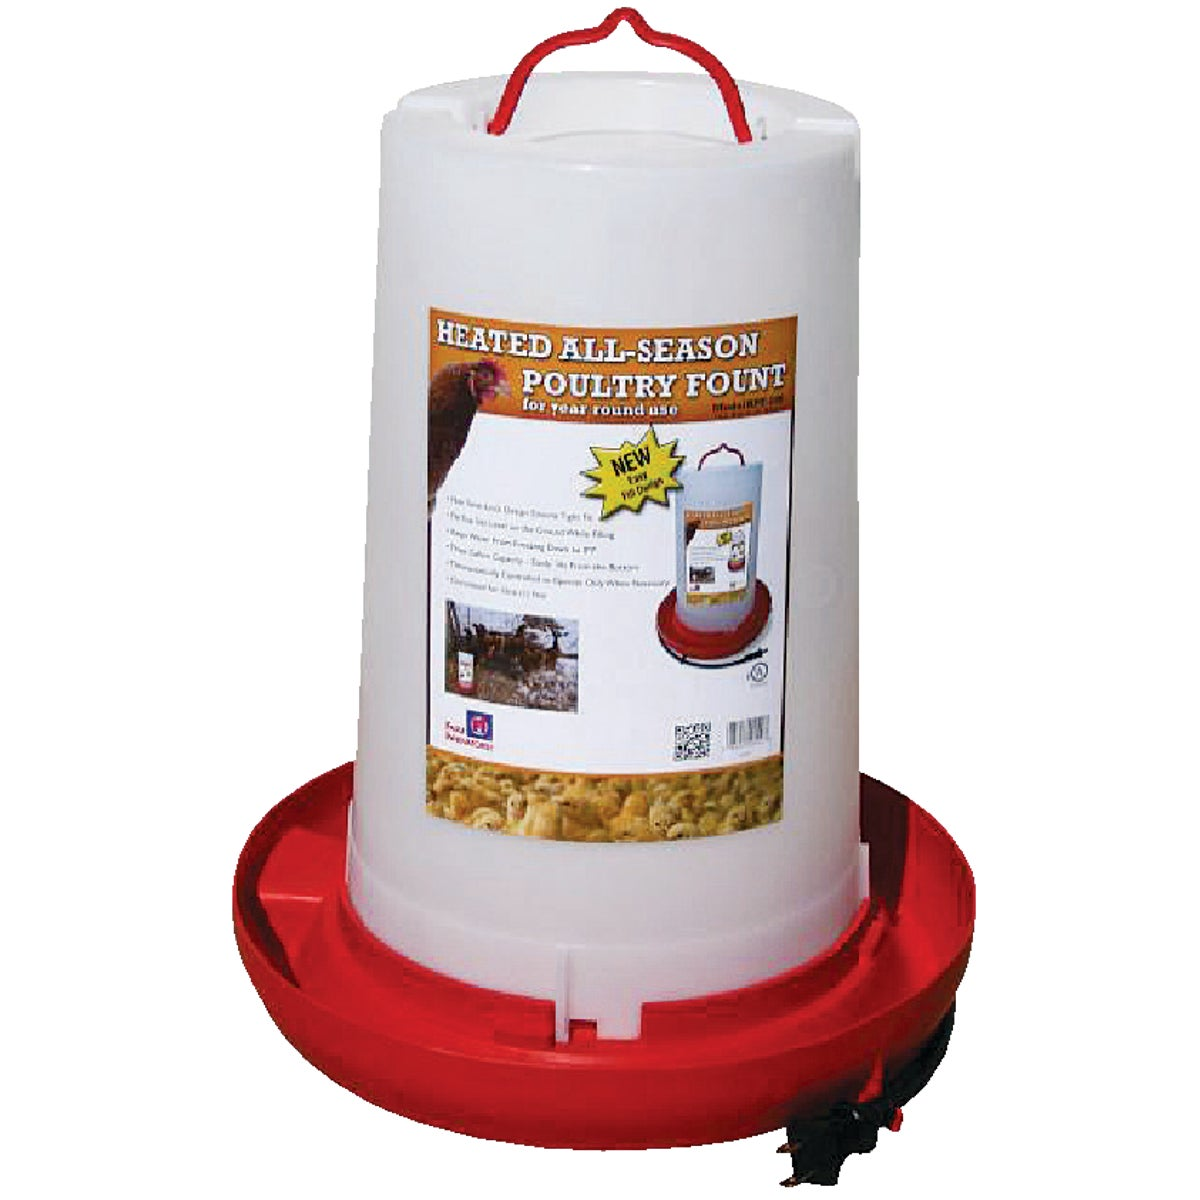 HEATED POULTRY FOUNT